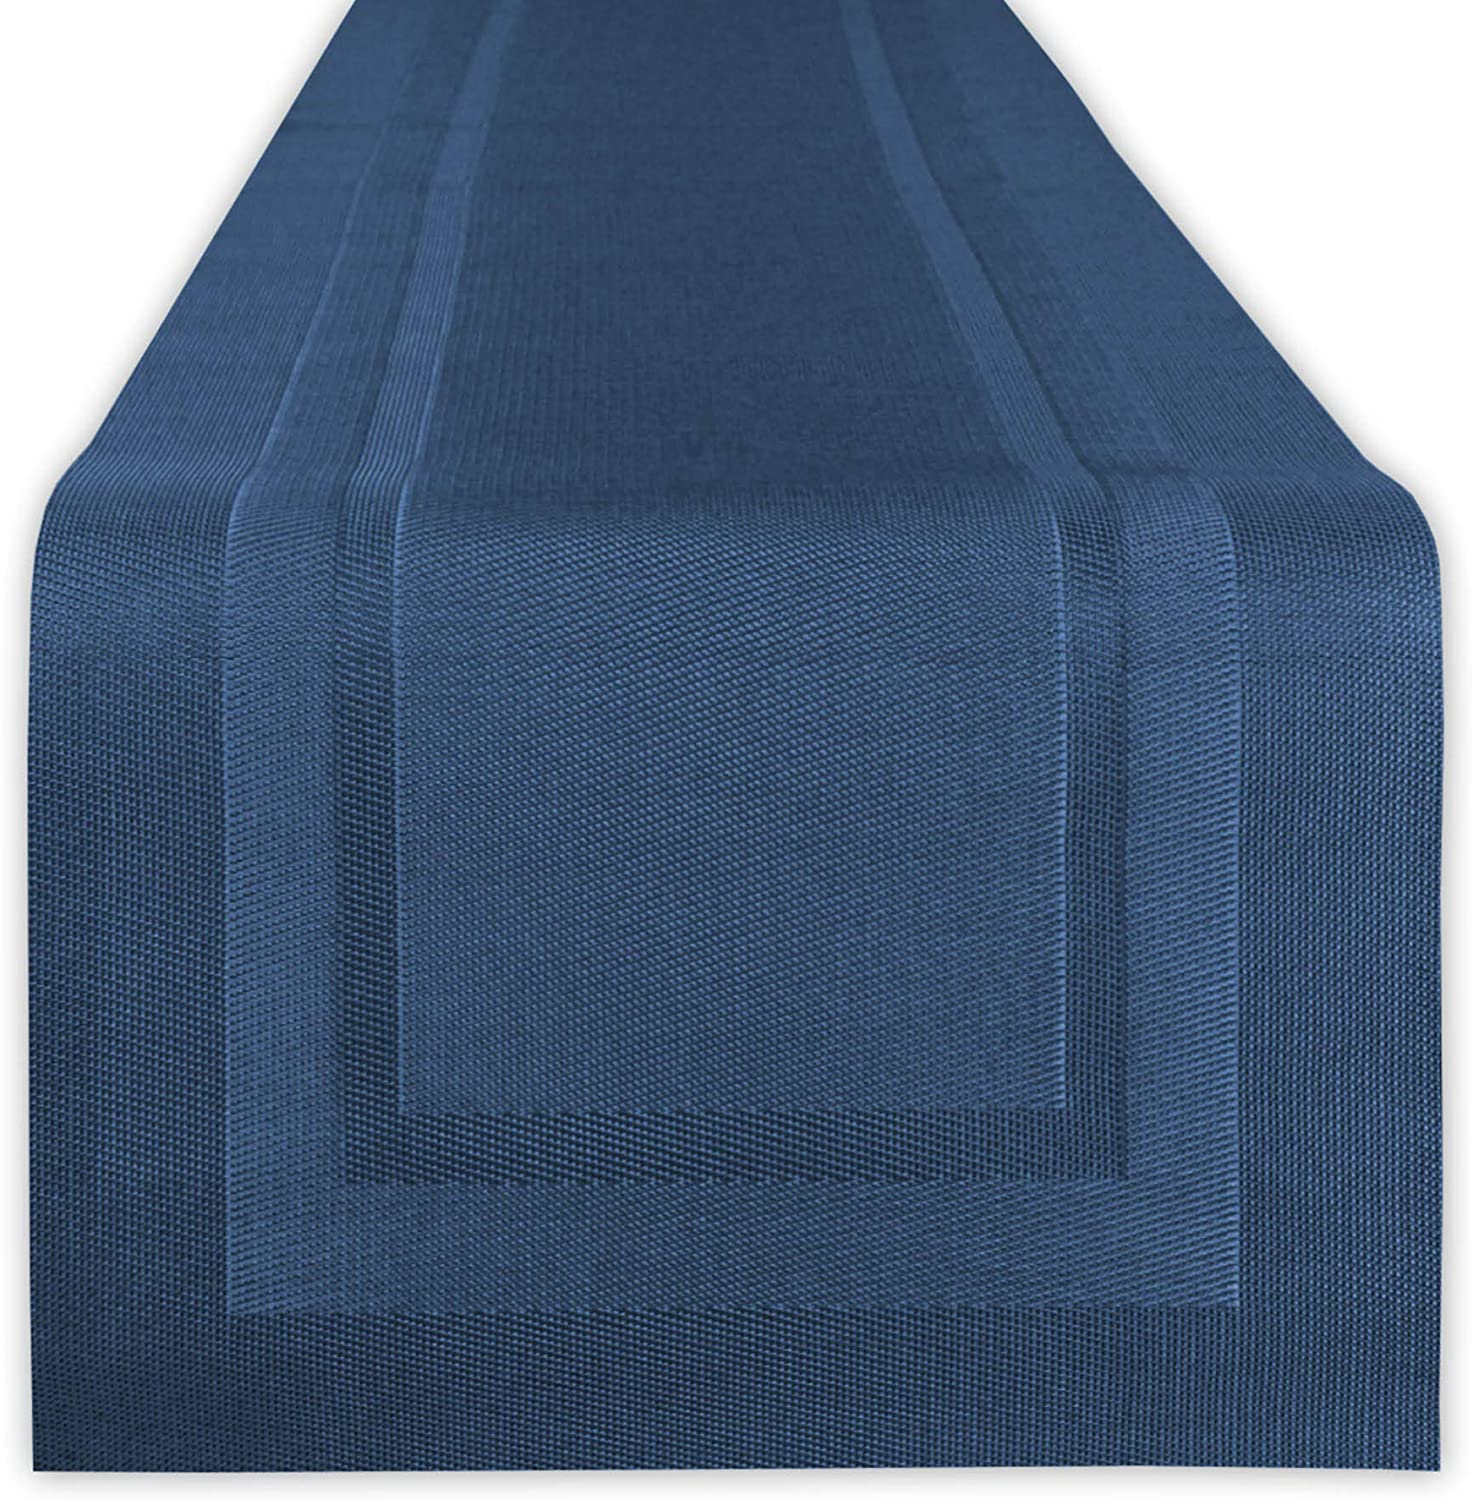 DII Vinyl Indoor/Outdoor Tabletop, Table Runner, Space Dyed Nautical Blue